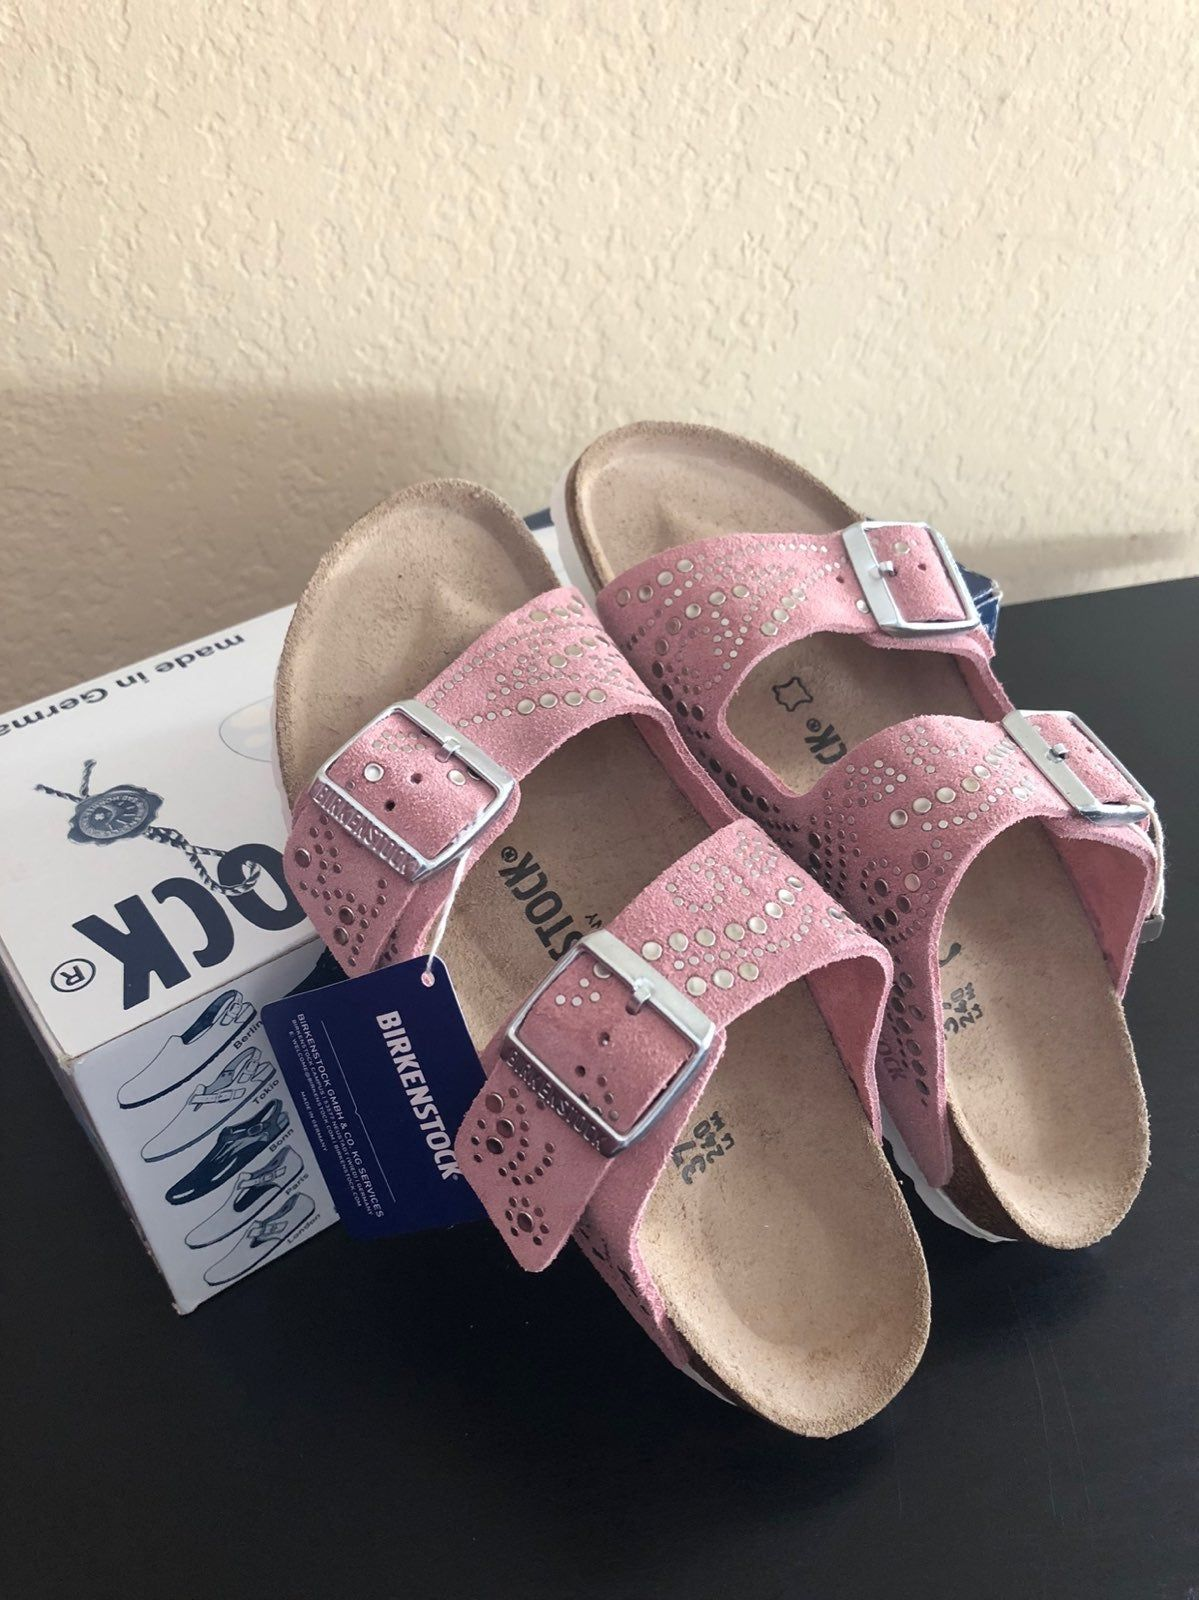 Brand New Unused Birkenstock Sandal For Women Us Size 7 With Box And Tag Material Is Soft Leather With Stud Bought At Birkenstock Sandals Birkenstock Sandals